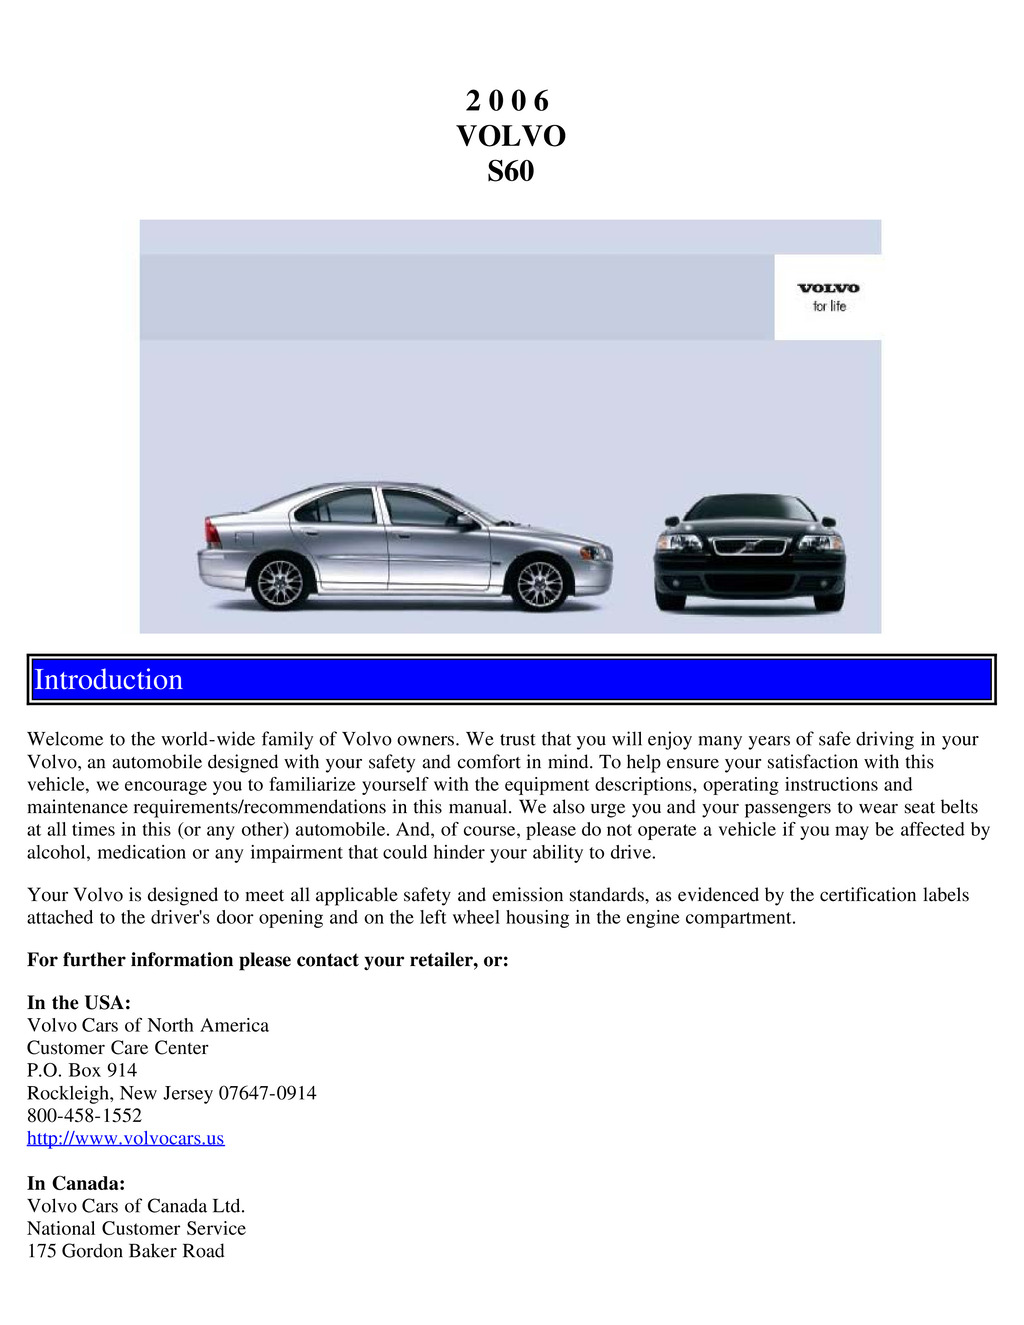 2006 Volvo S60 owners manual